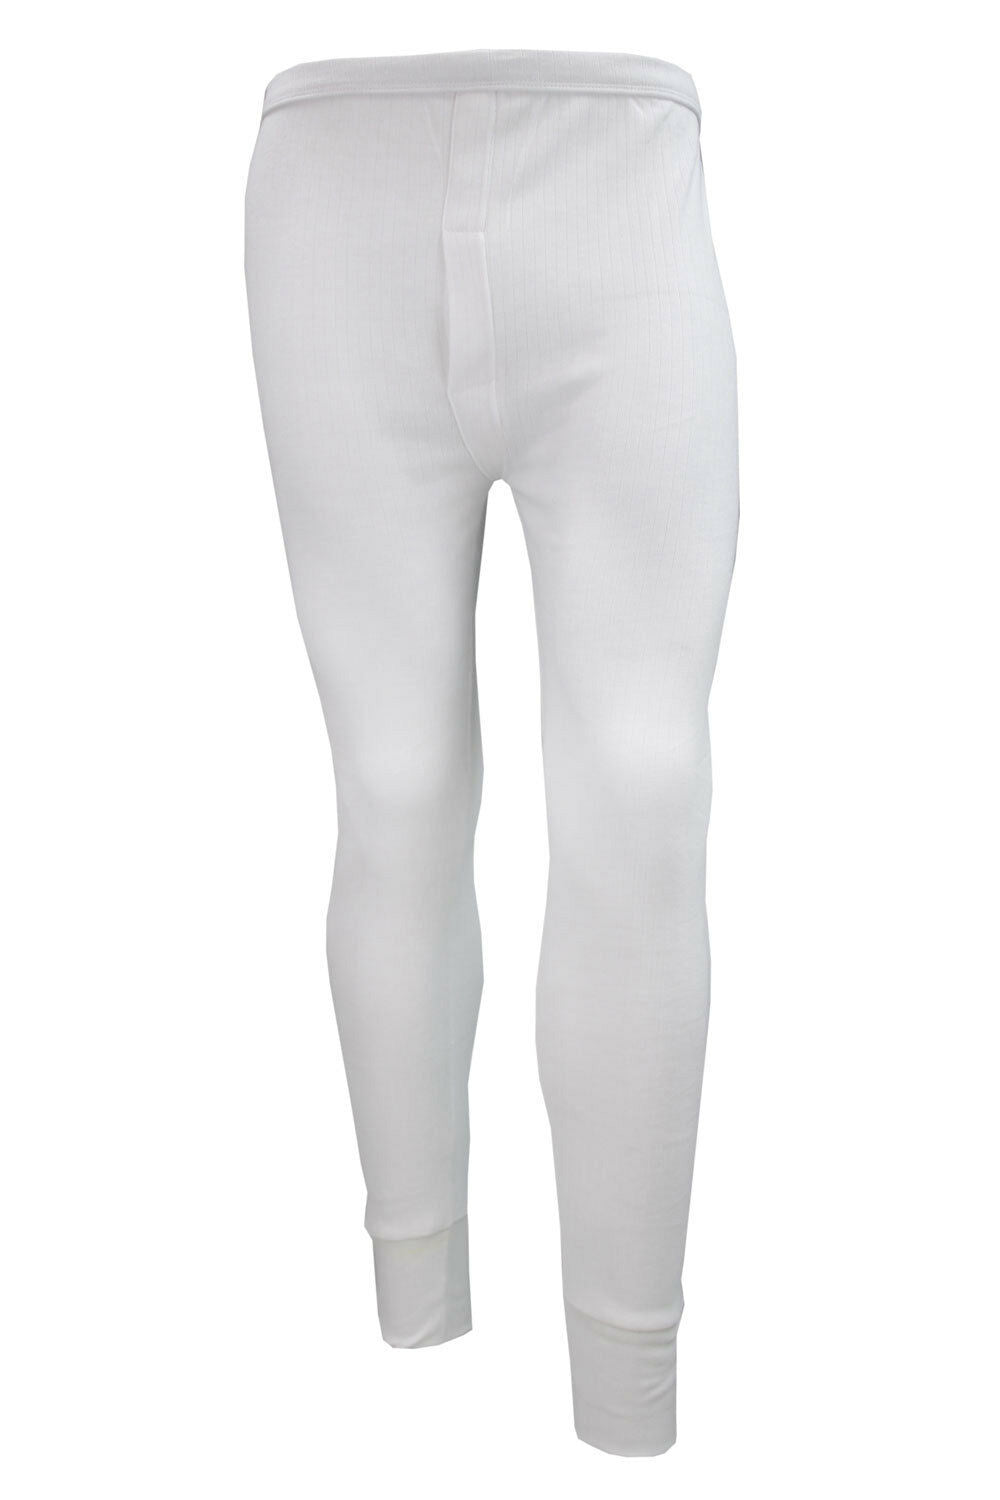 2 Pack Mens Thermal Long Johns Top Bottom